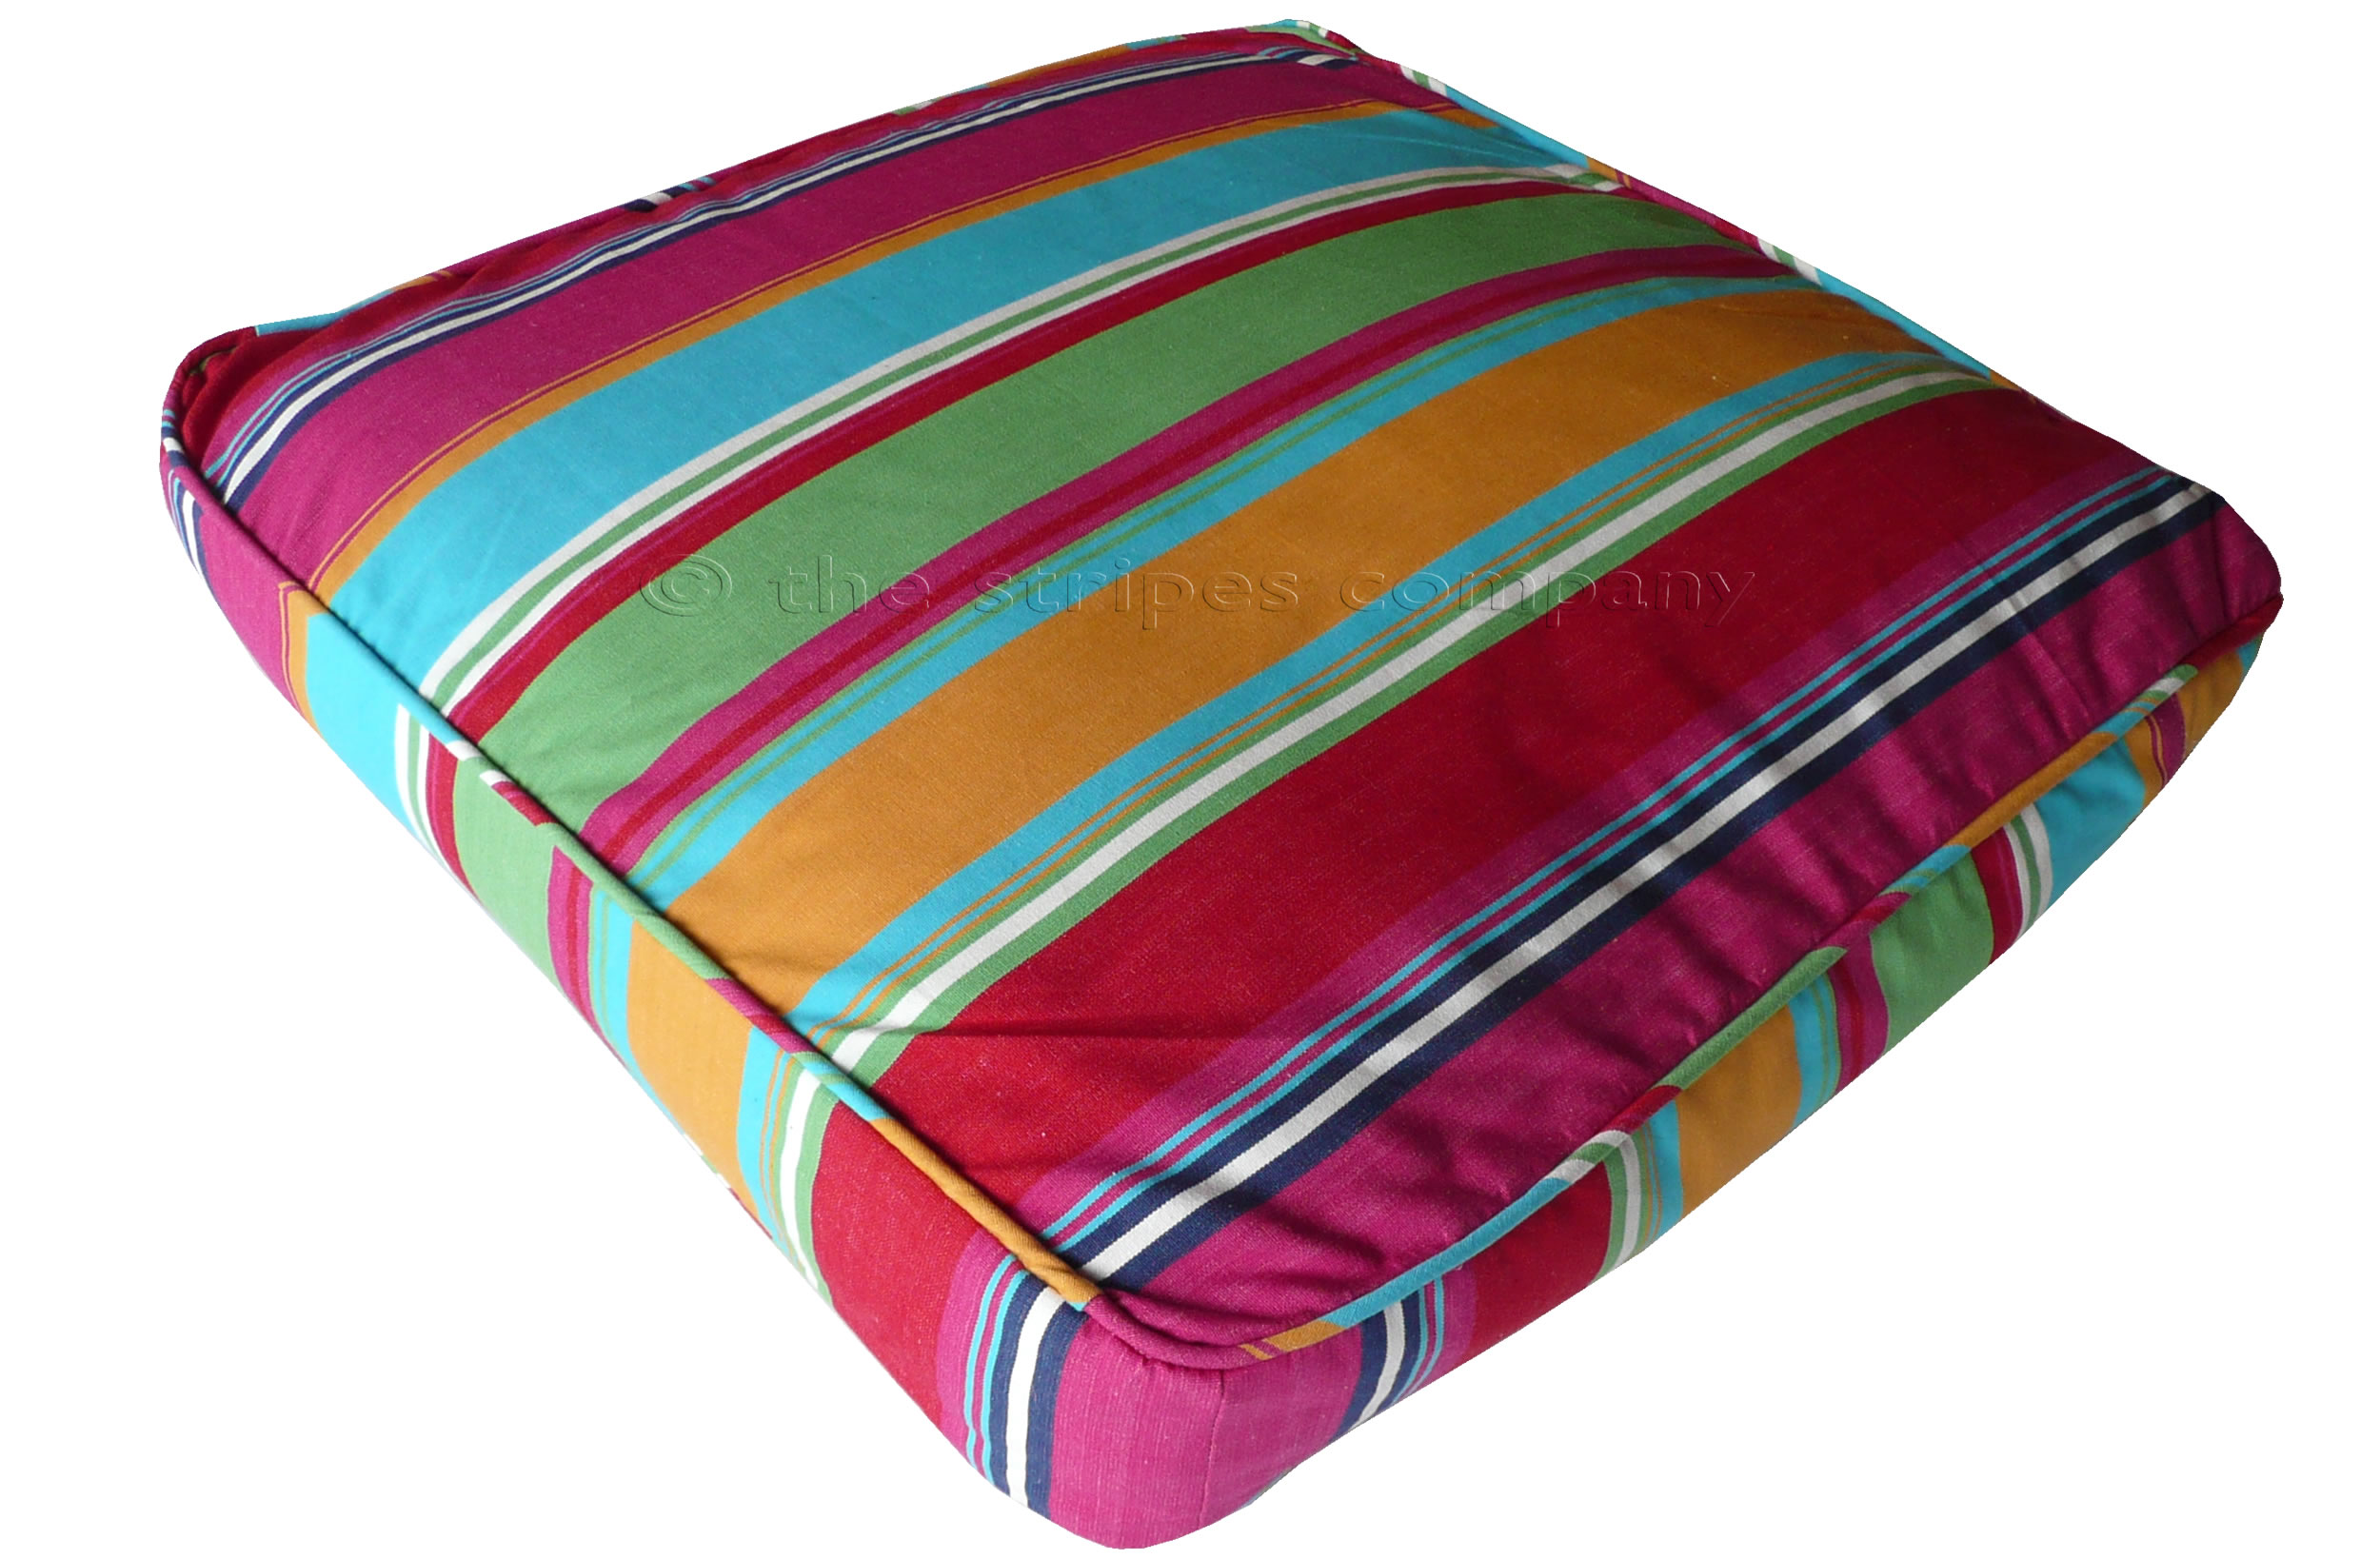 Pink Striped Floor Cushions | Large Square Piped Floor Cushions Karting Pink Stripe